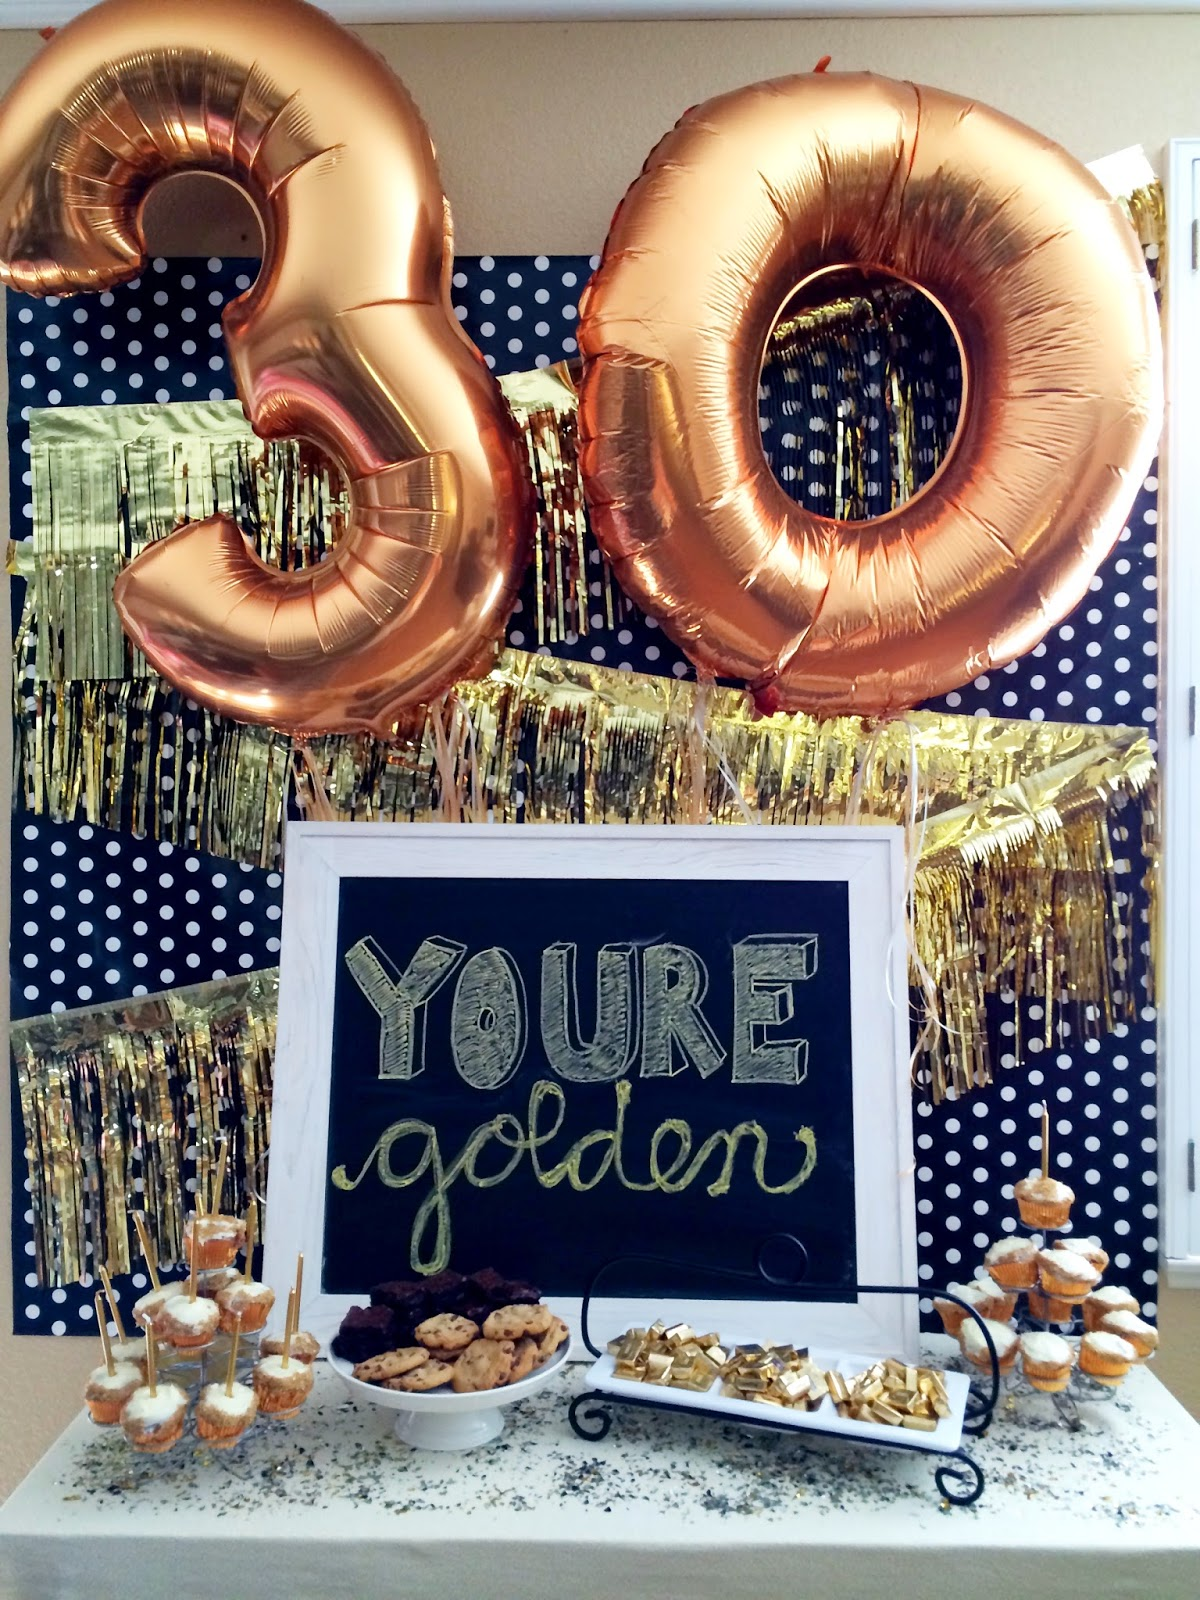 30 Yr Fixed Mortgage Rates: 7 Clever Themes For A Smashing 30th Birthday Party